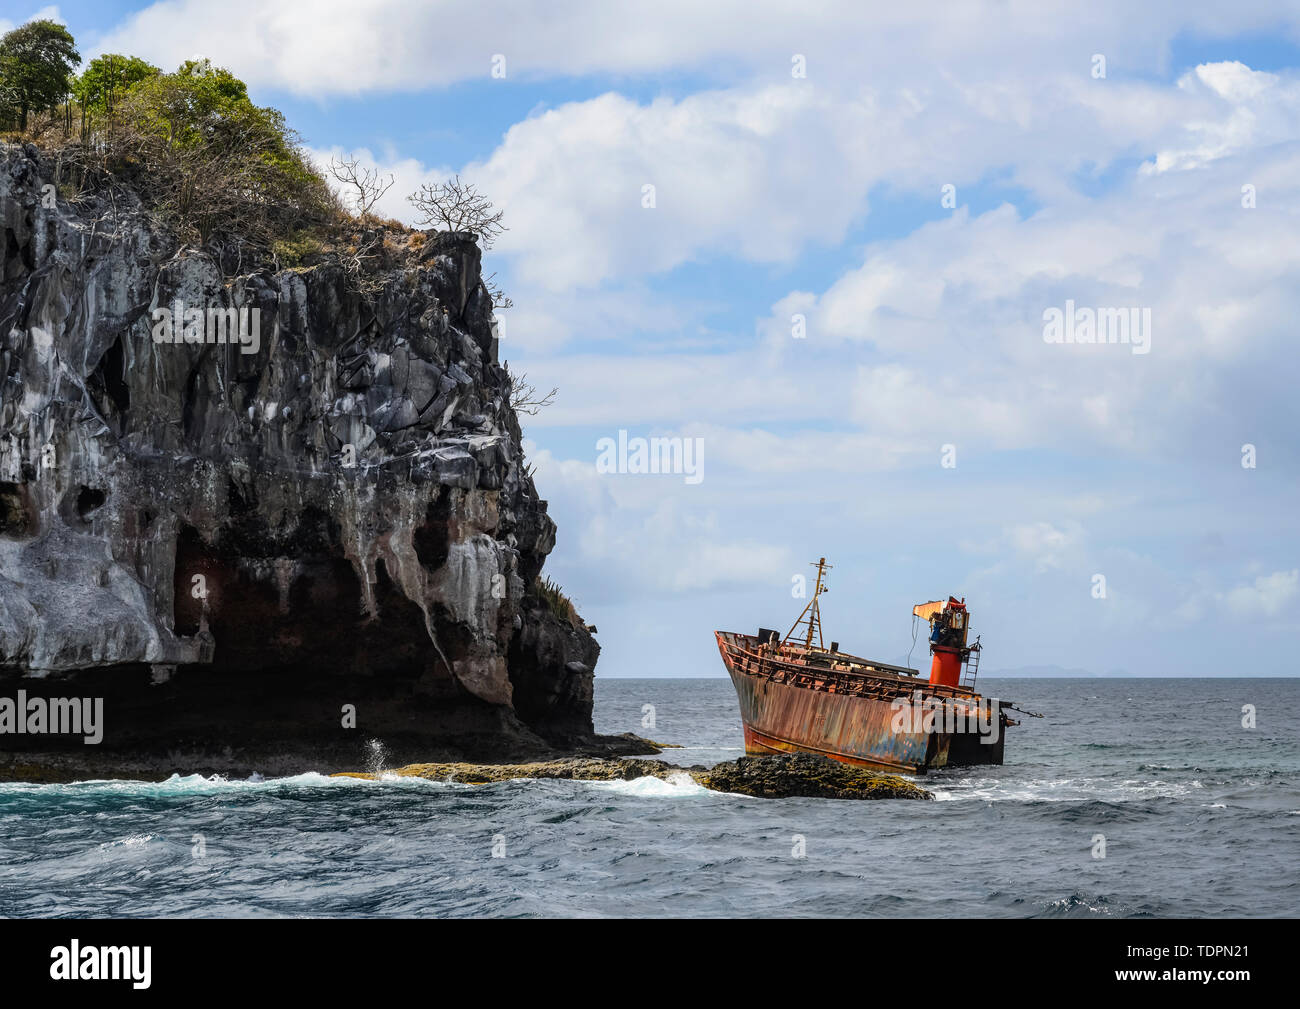 Shipwreck off the island of St Vincent in the Caribbean; Saint Vincent and the Grenadines Stock Photo